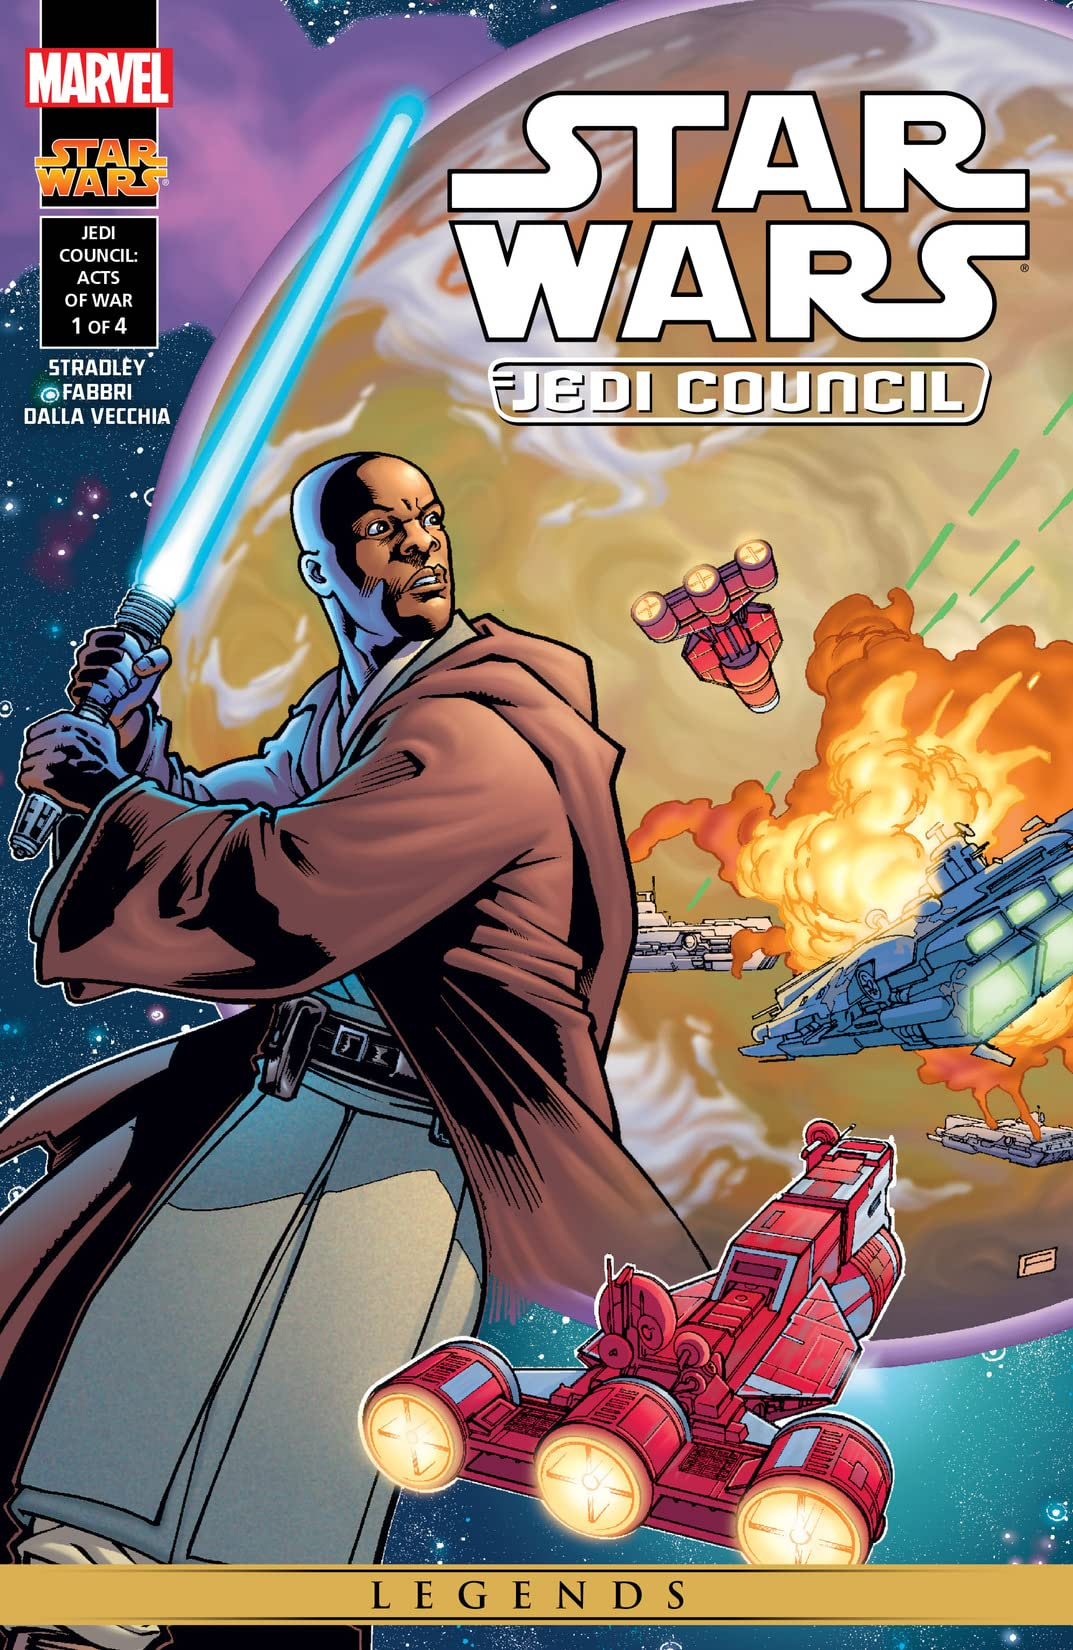 Star Wars: Jedi Council - Acts of War (2000) #1 (of 4)